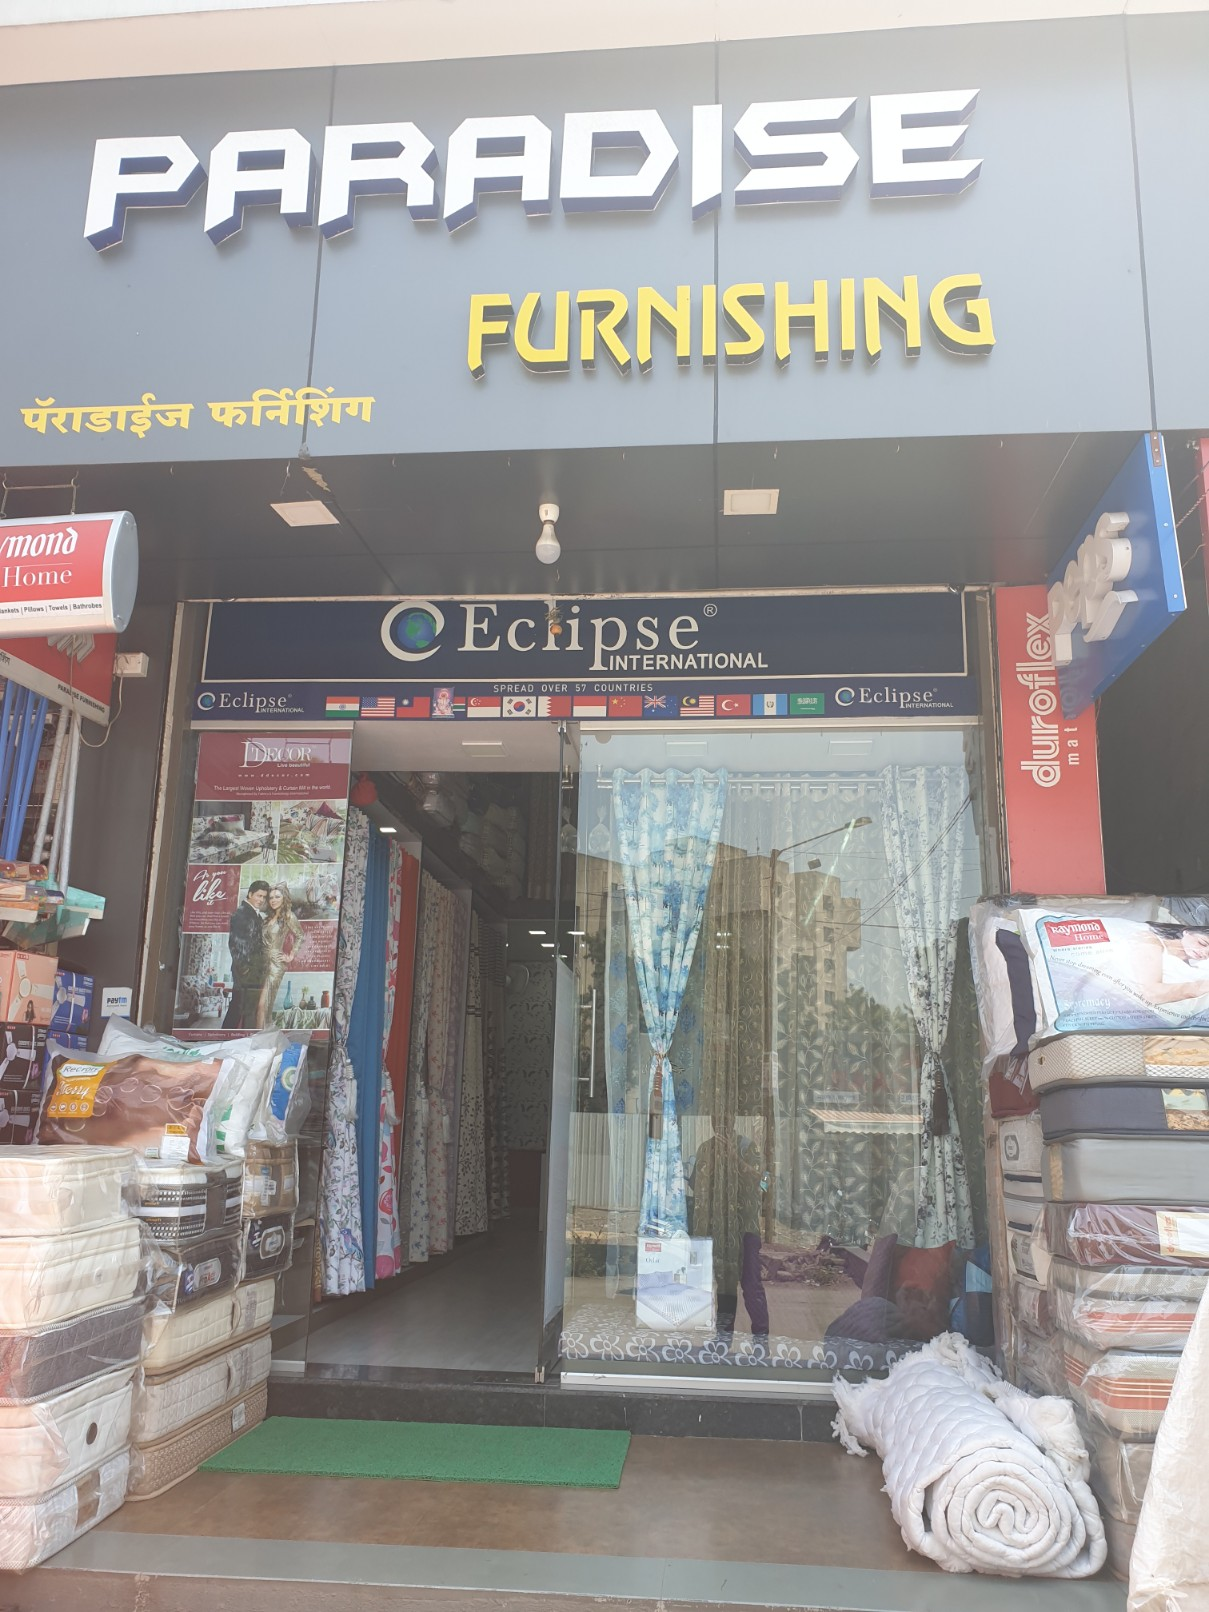 Paradise furnishing  Home Decor in Wadgoan Sheri Pune